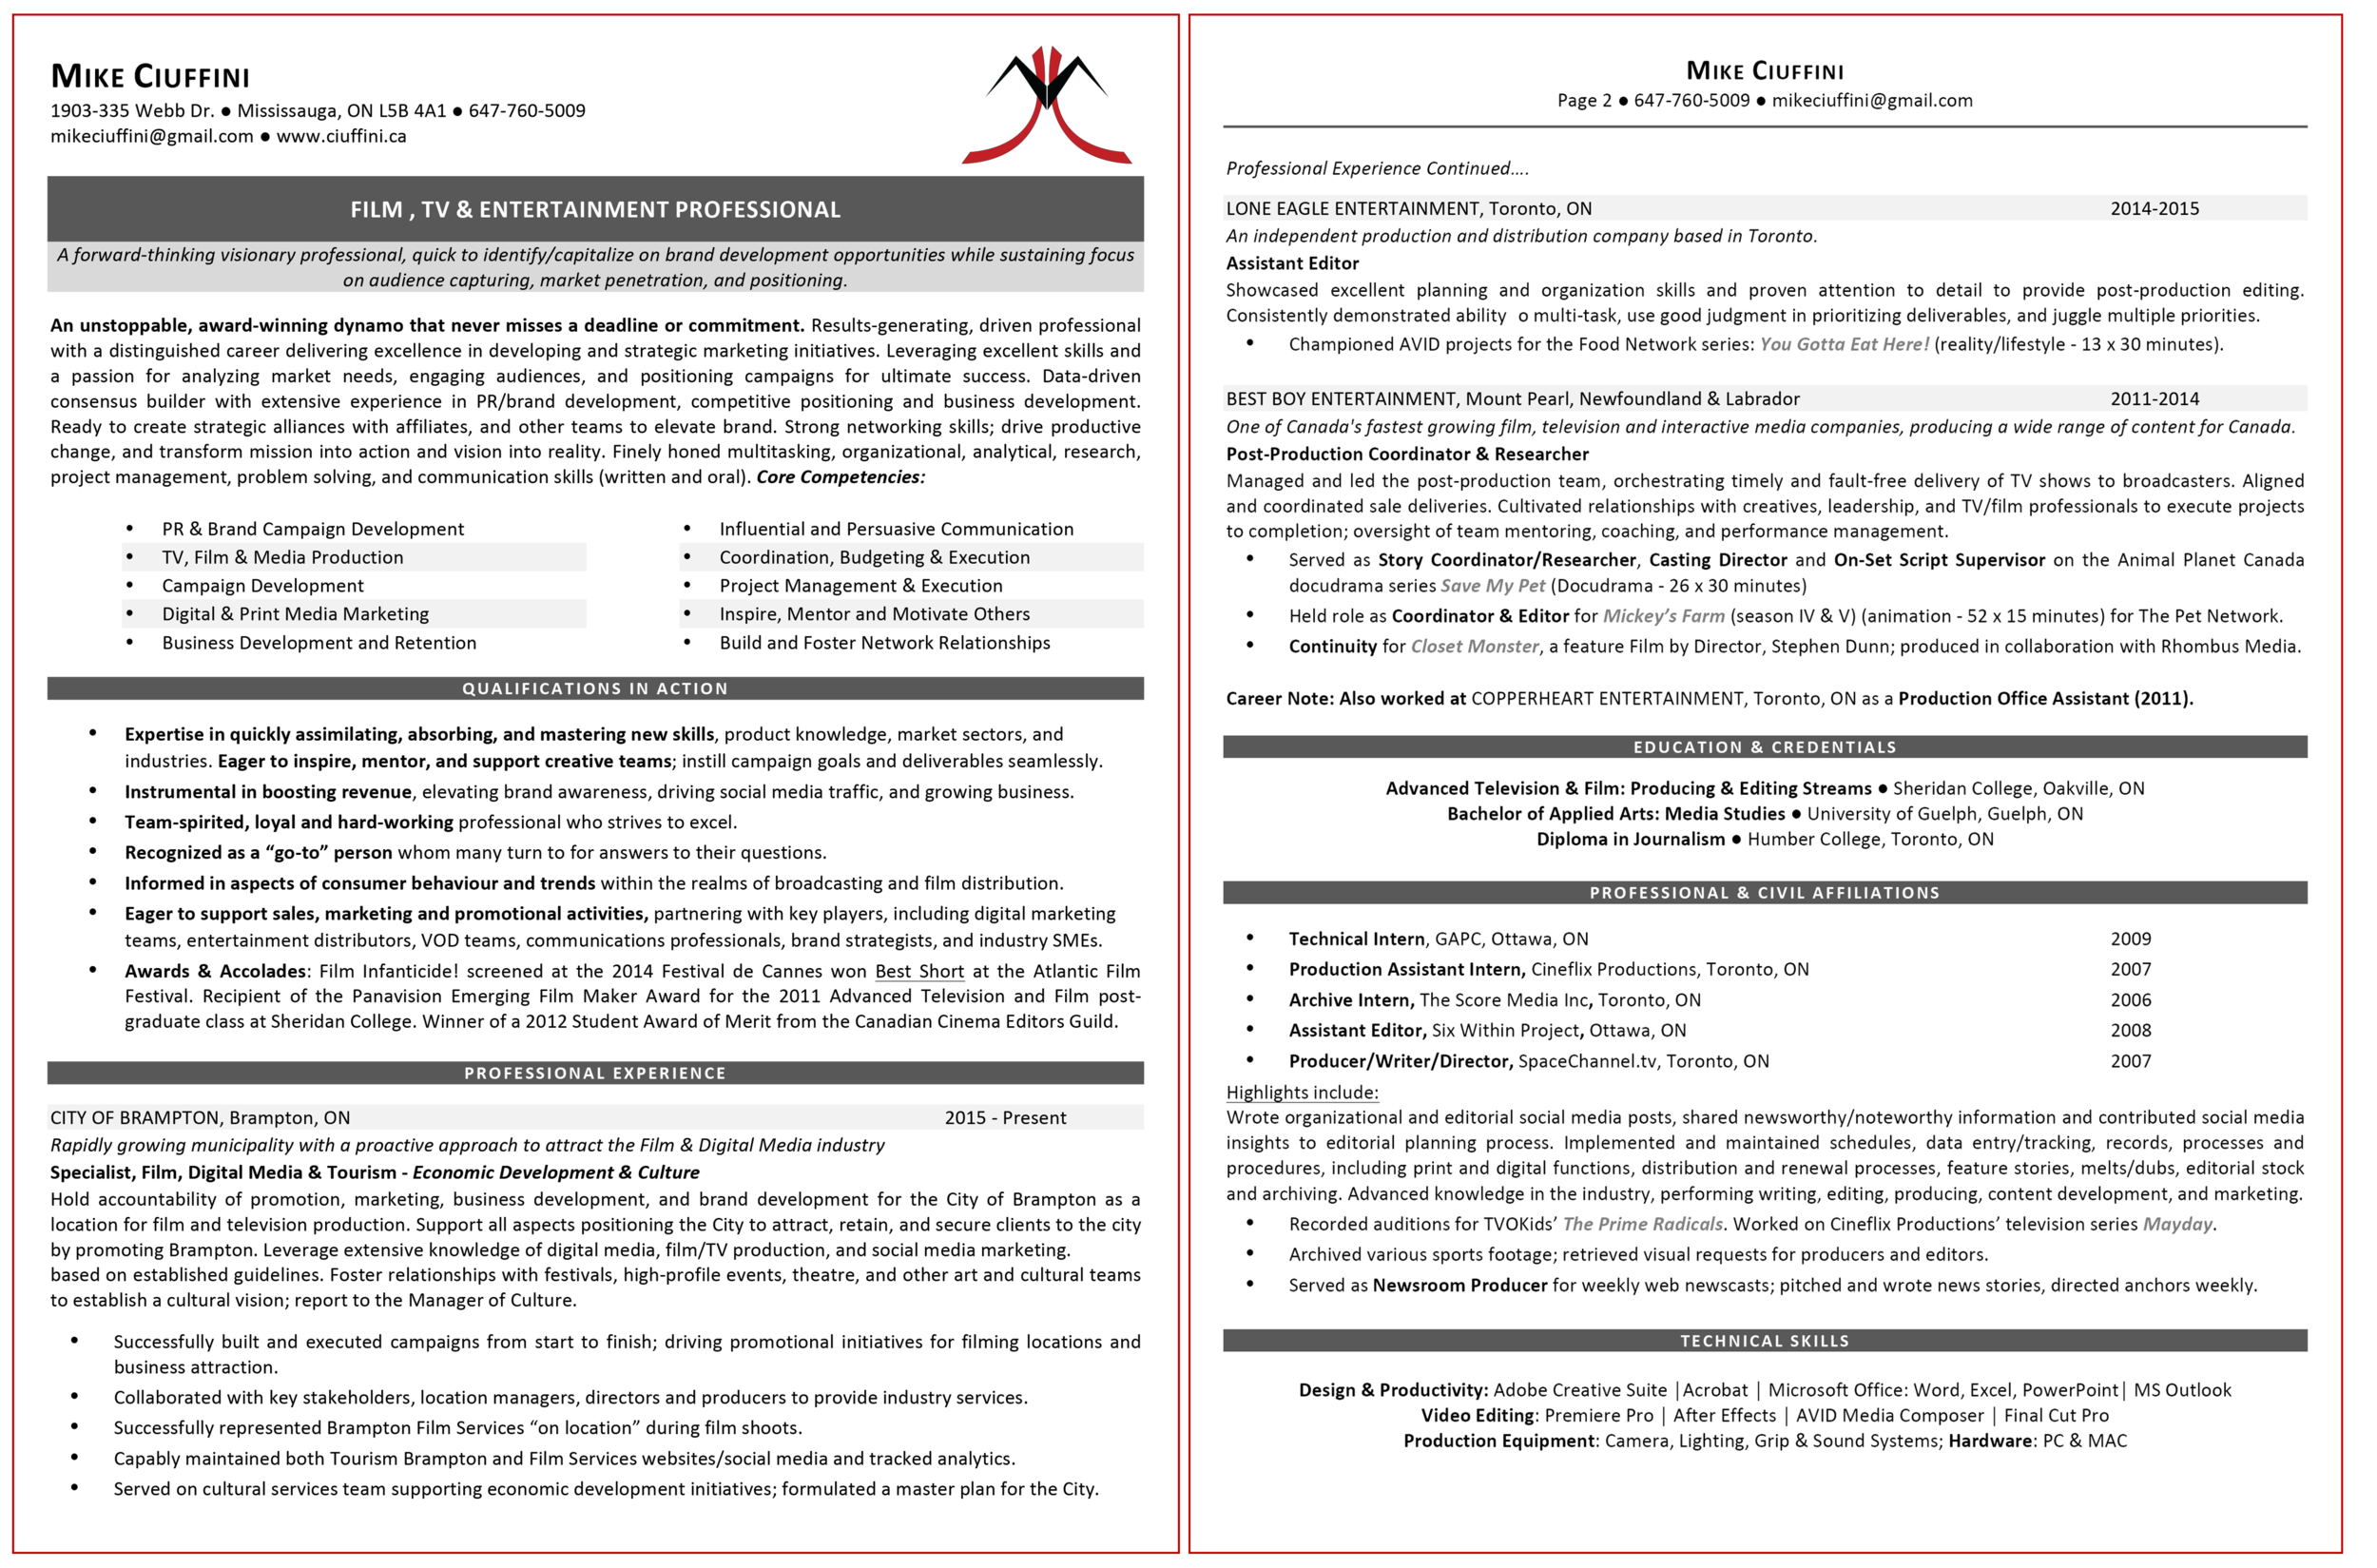 Click to view resume as PDF